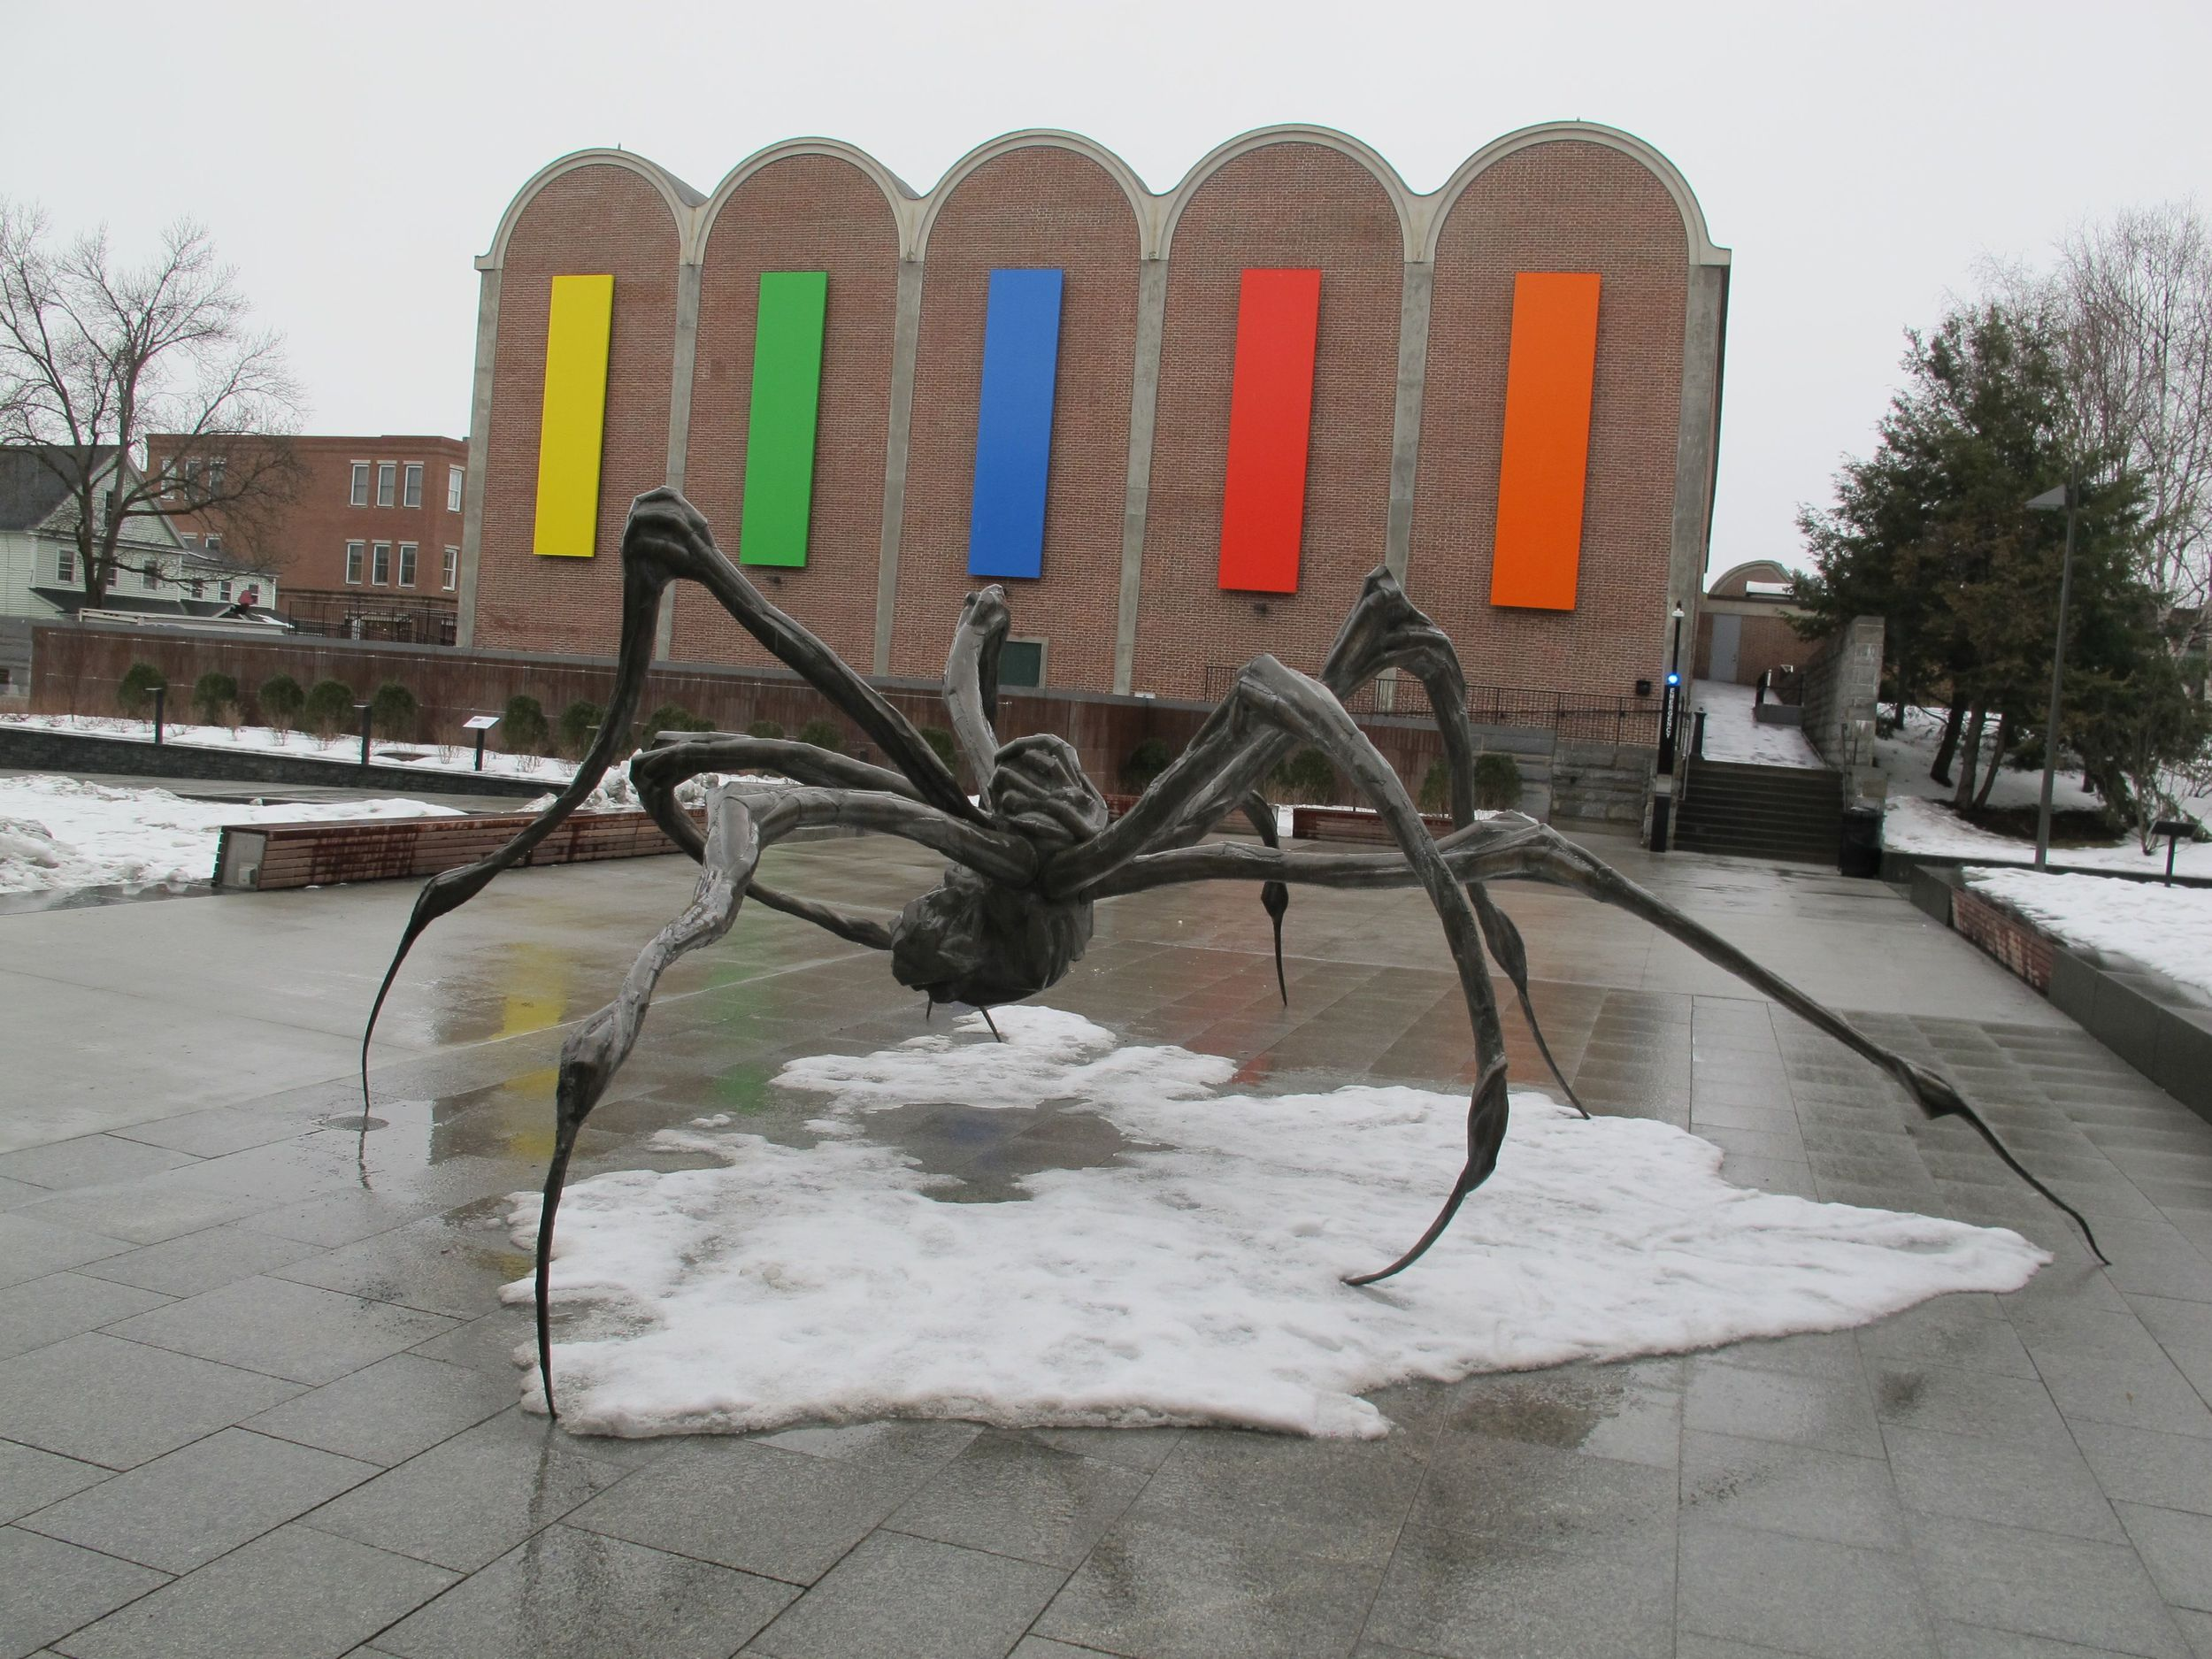 Louise Bourgeois' Crouching Spider